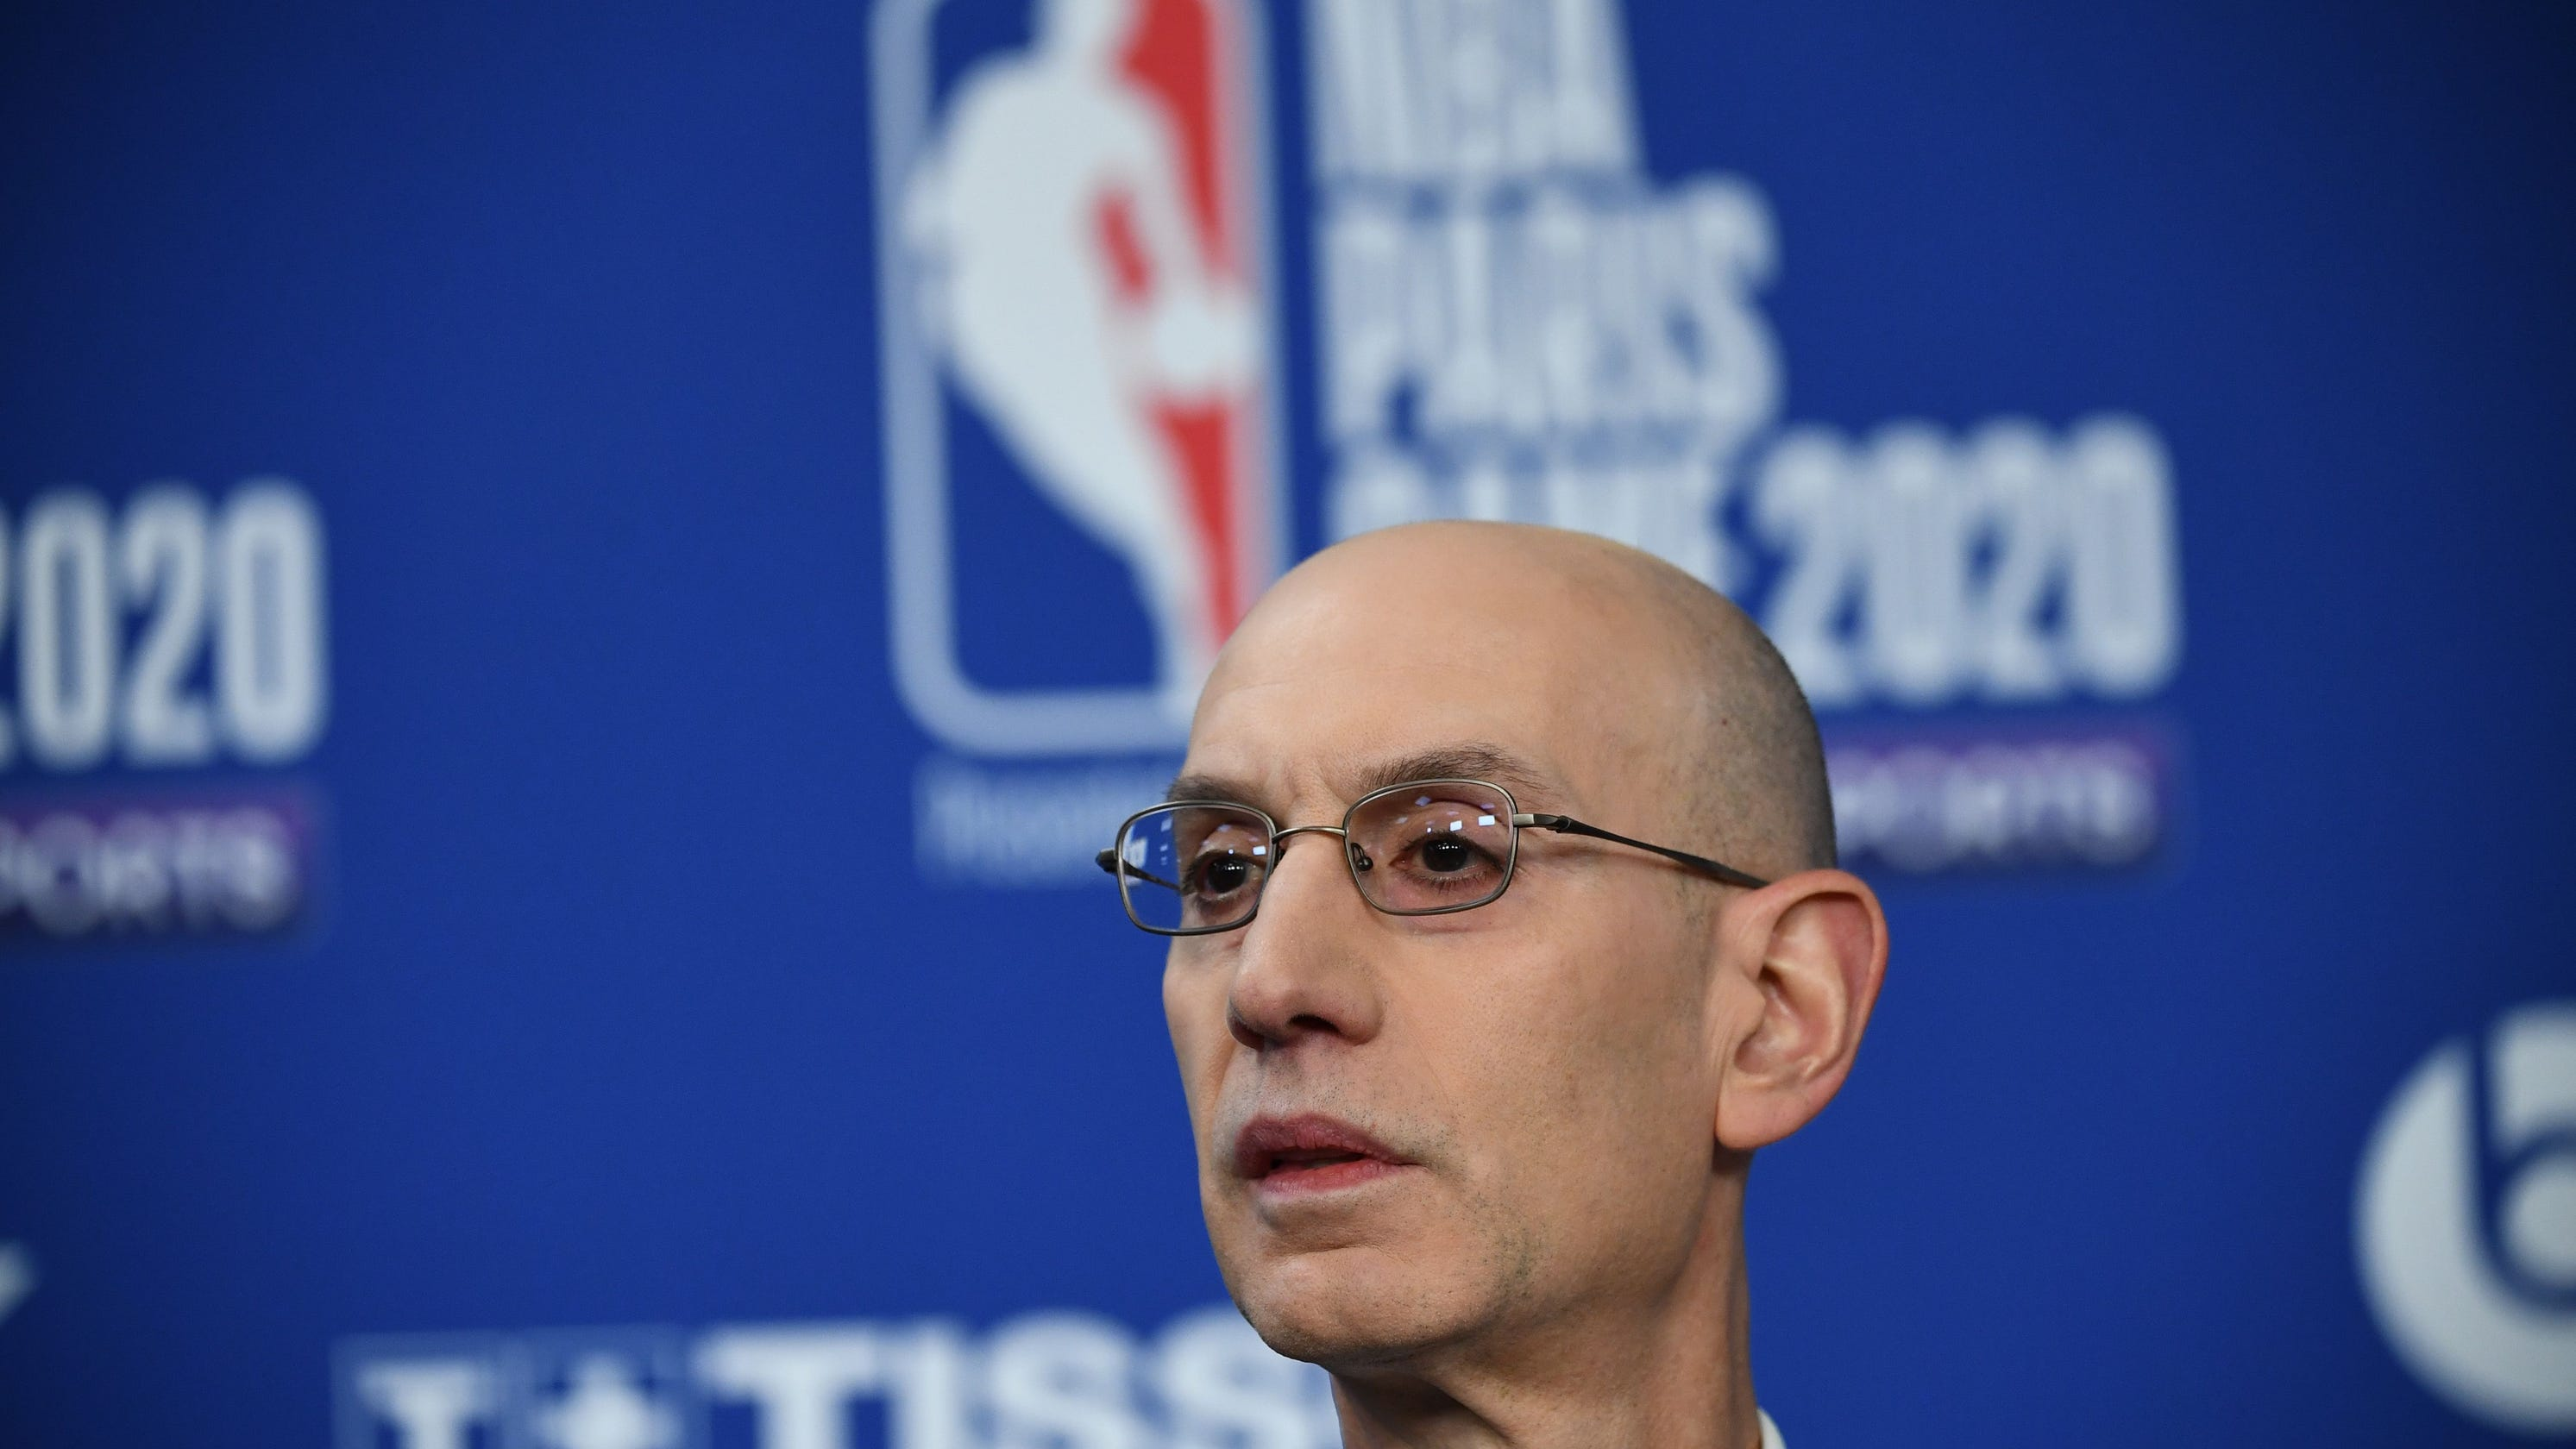 The NBA is trying to stay ahead of the coronavirus outbreak